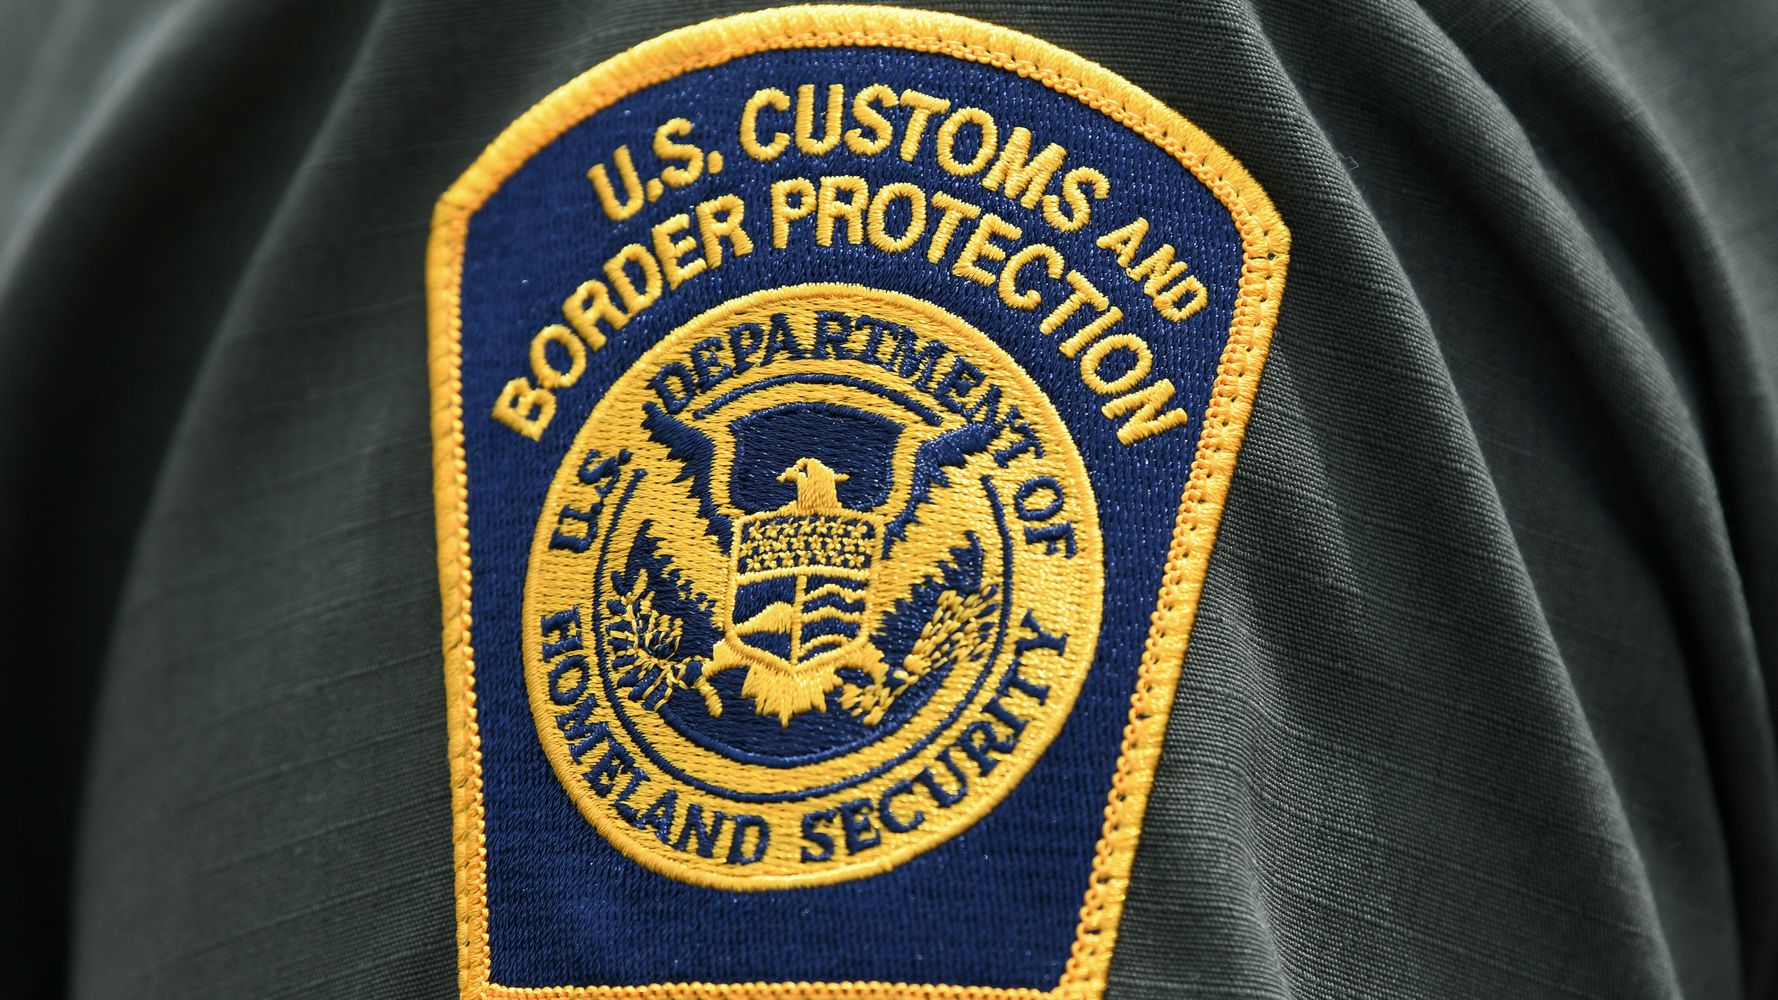 Customs Agent Allegedly Harassed Journalist With 'Propaganda' Questions At Virginia Airport